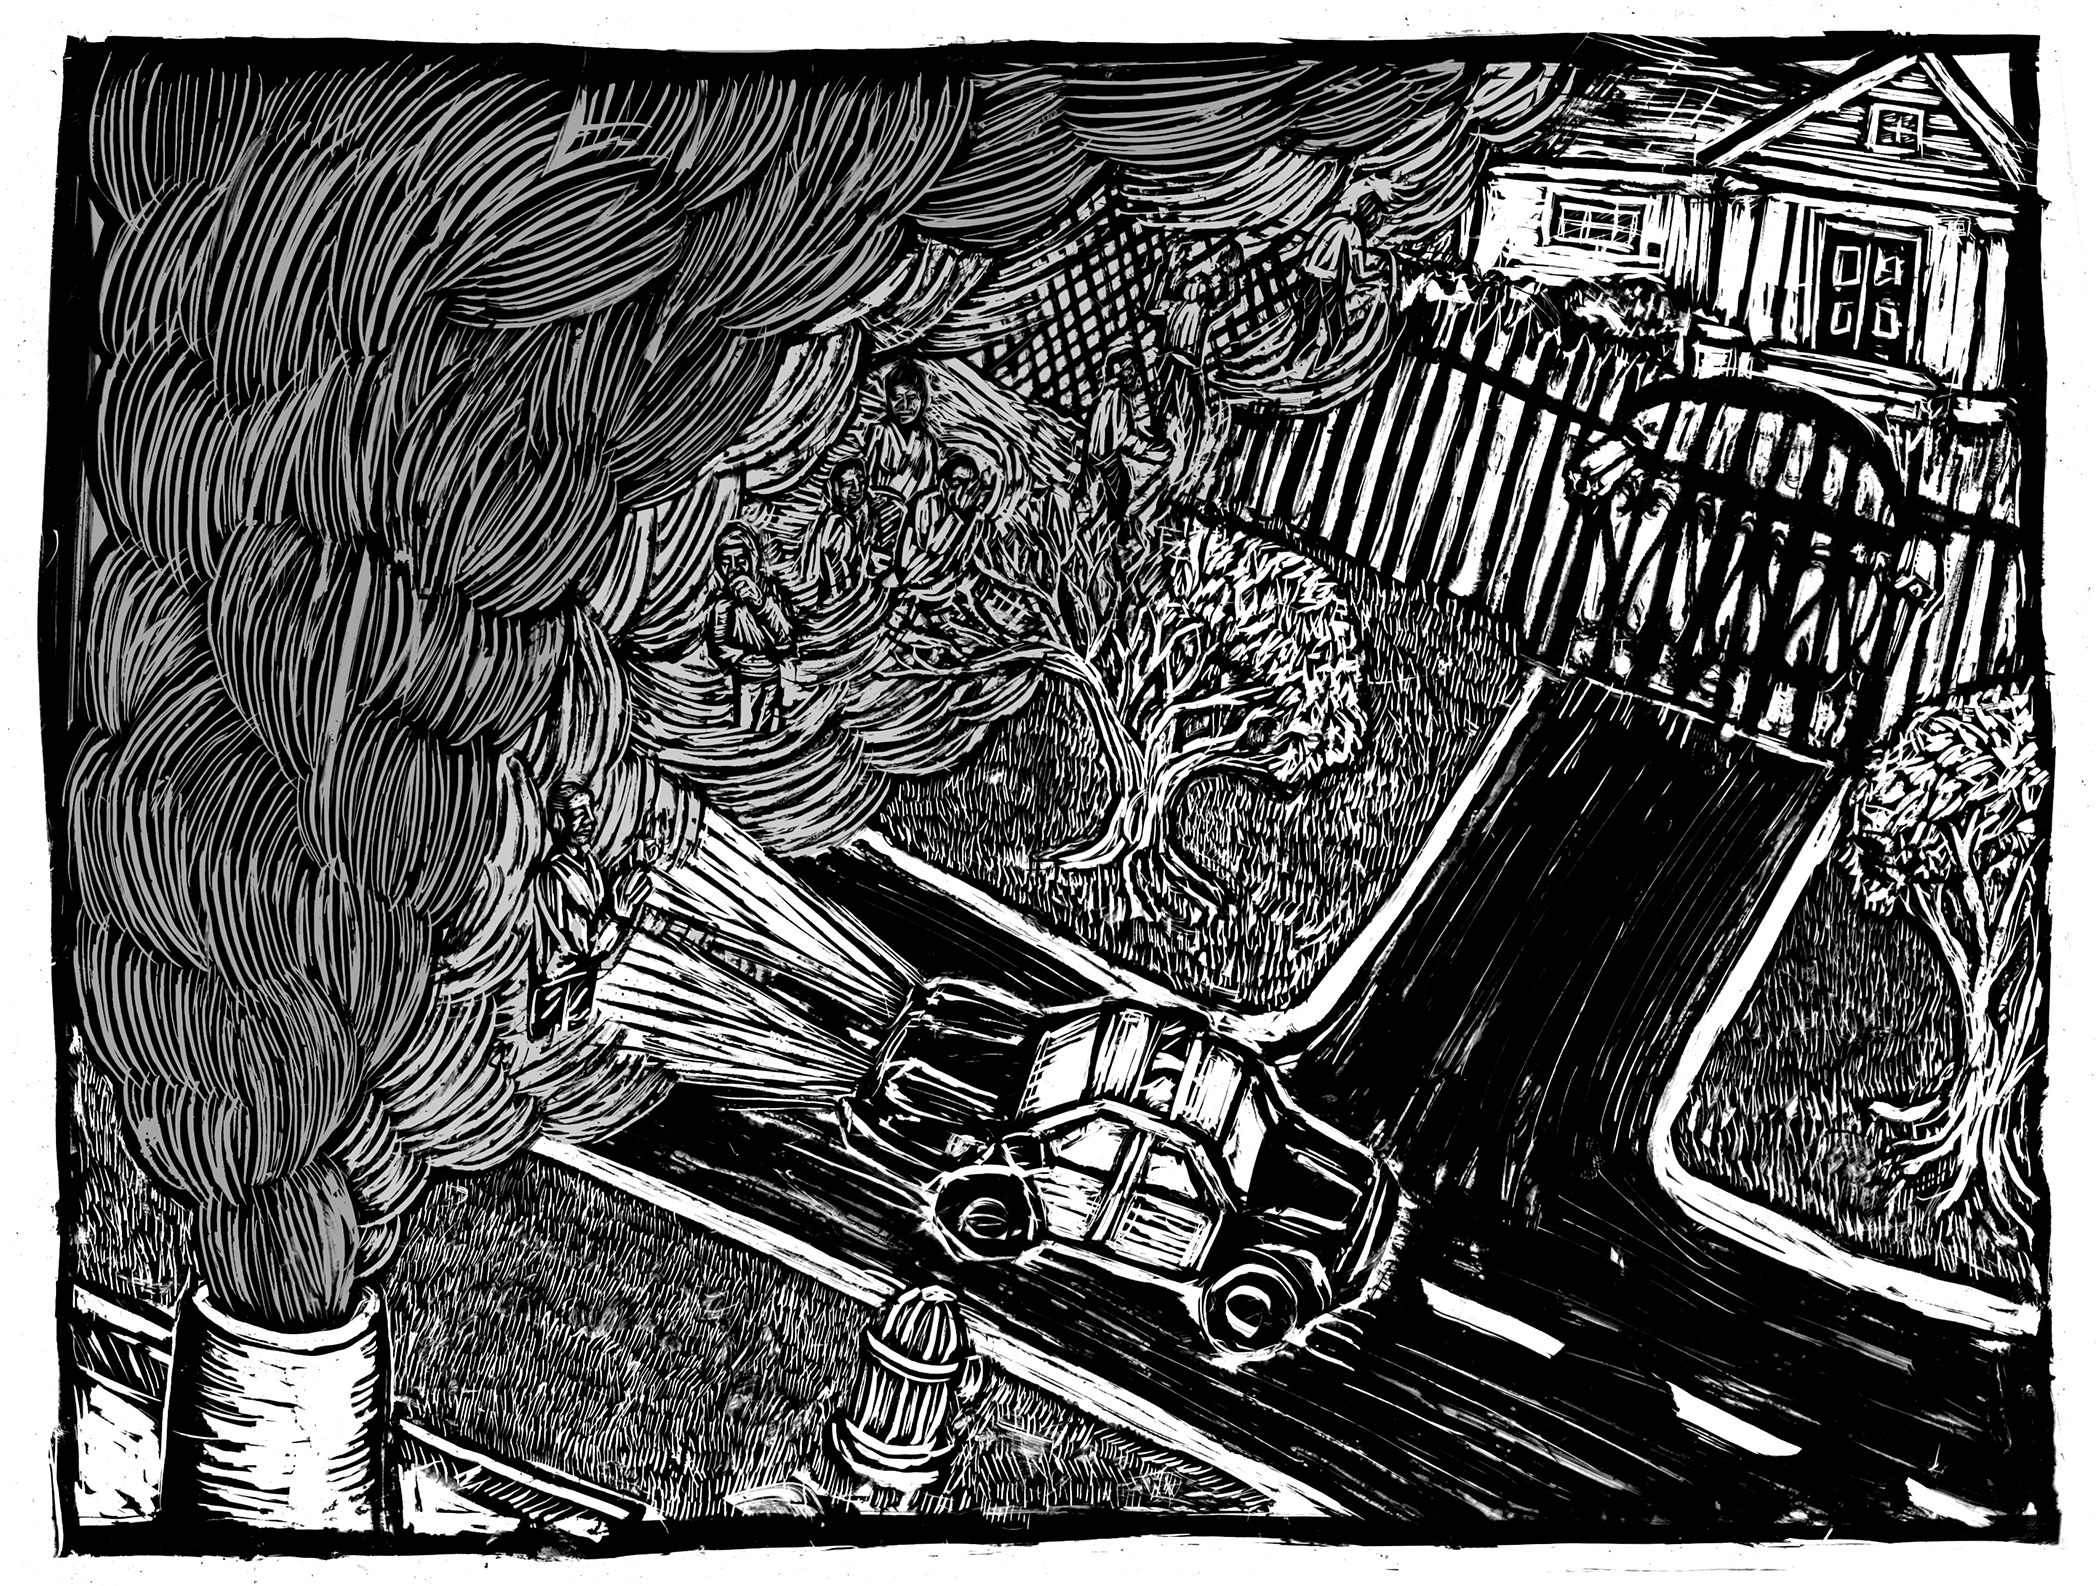 Scacrifice Zones - Woodcut by Eric Ruin | Zinn Educaiton Project